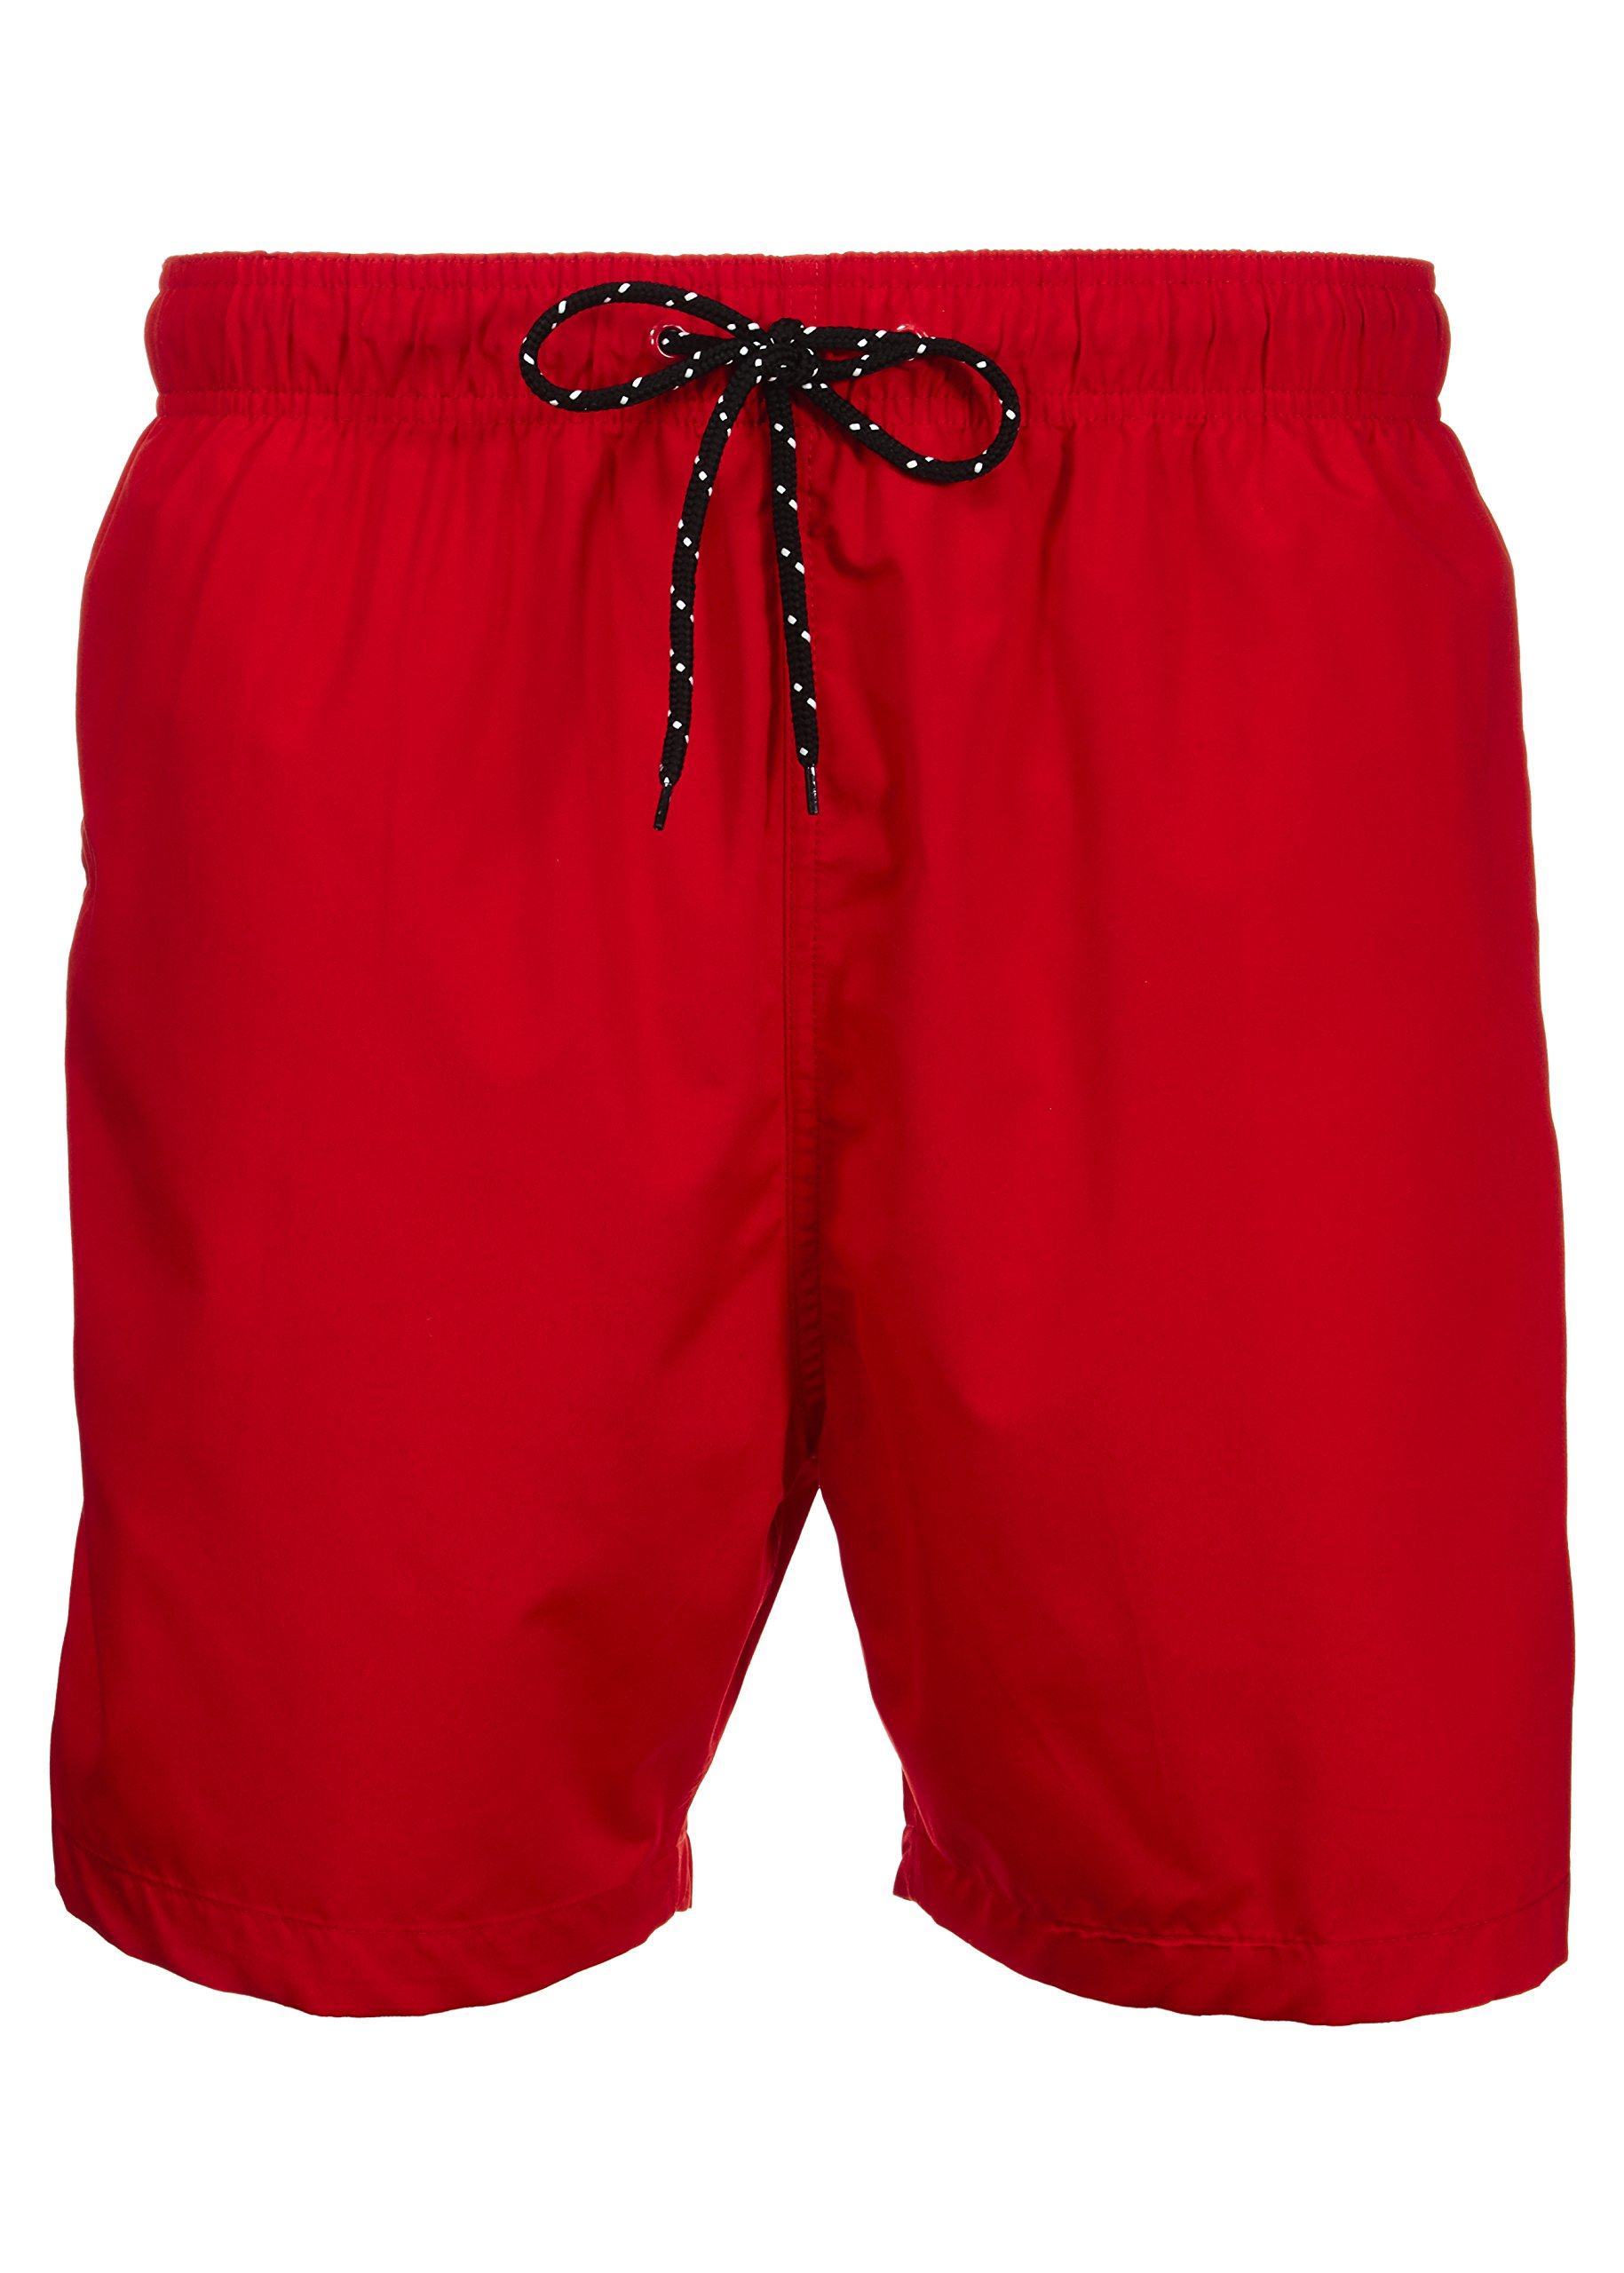 Laguna Men's New Islander Board Short Swim Trunks RED Medium